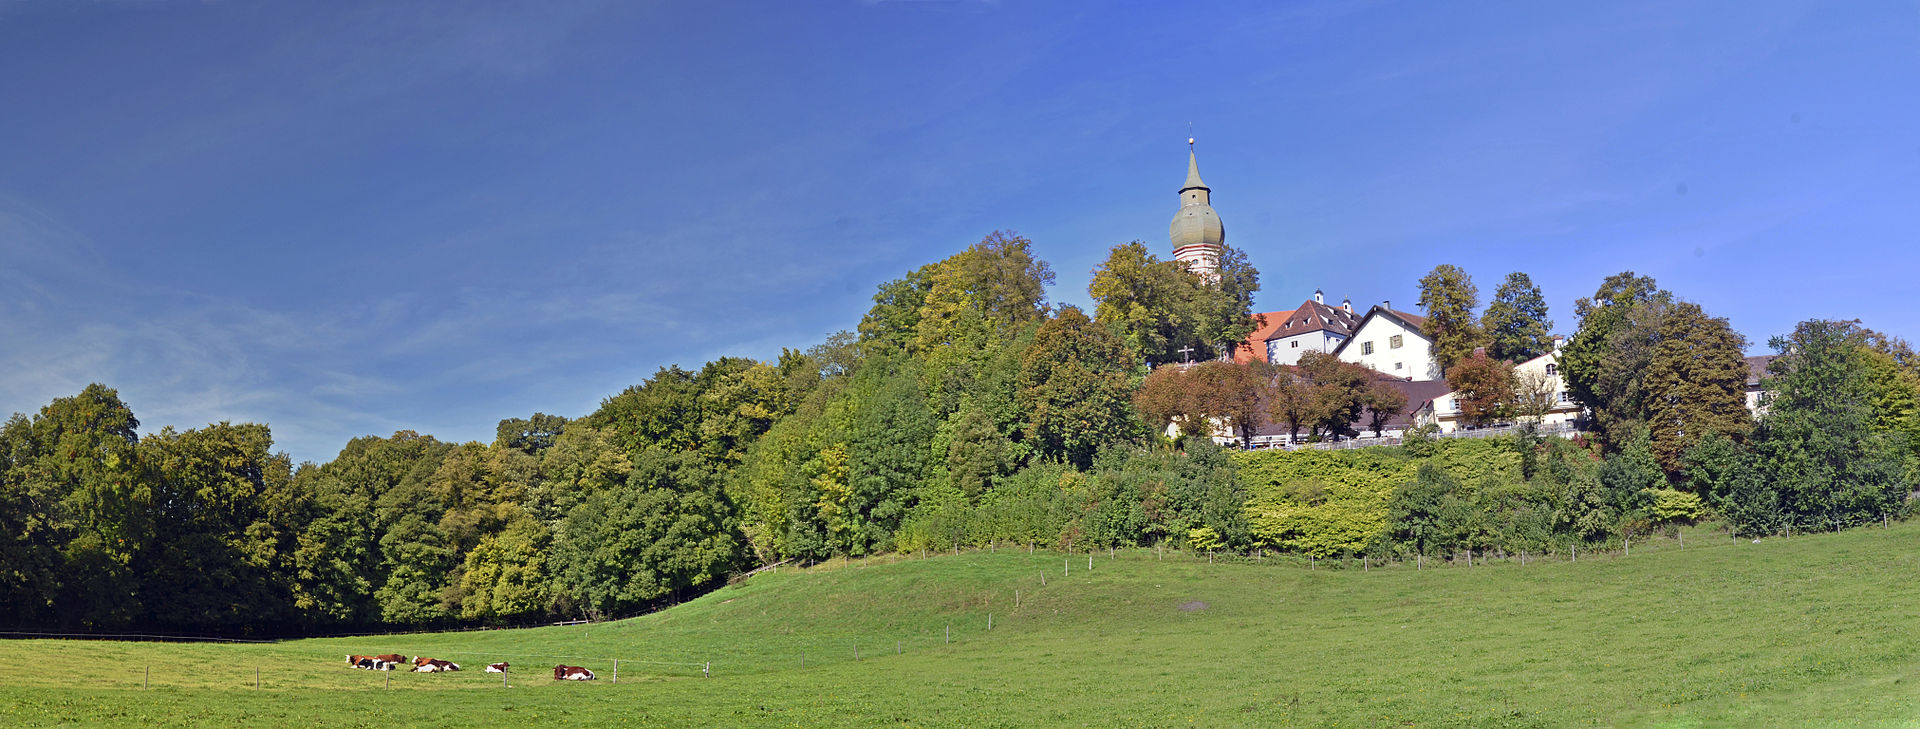 Kloster Andechs Panorama I